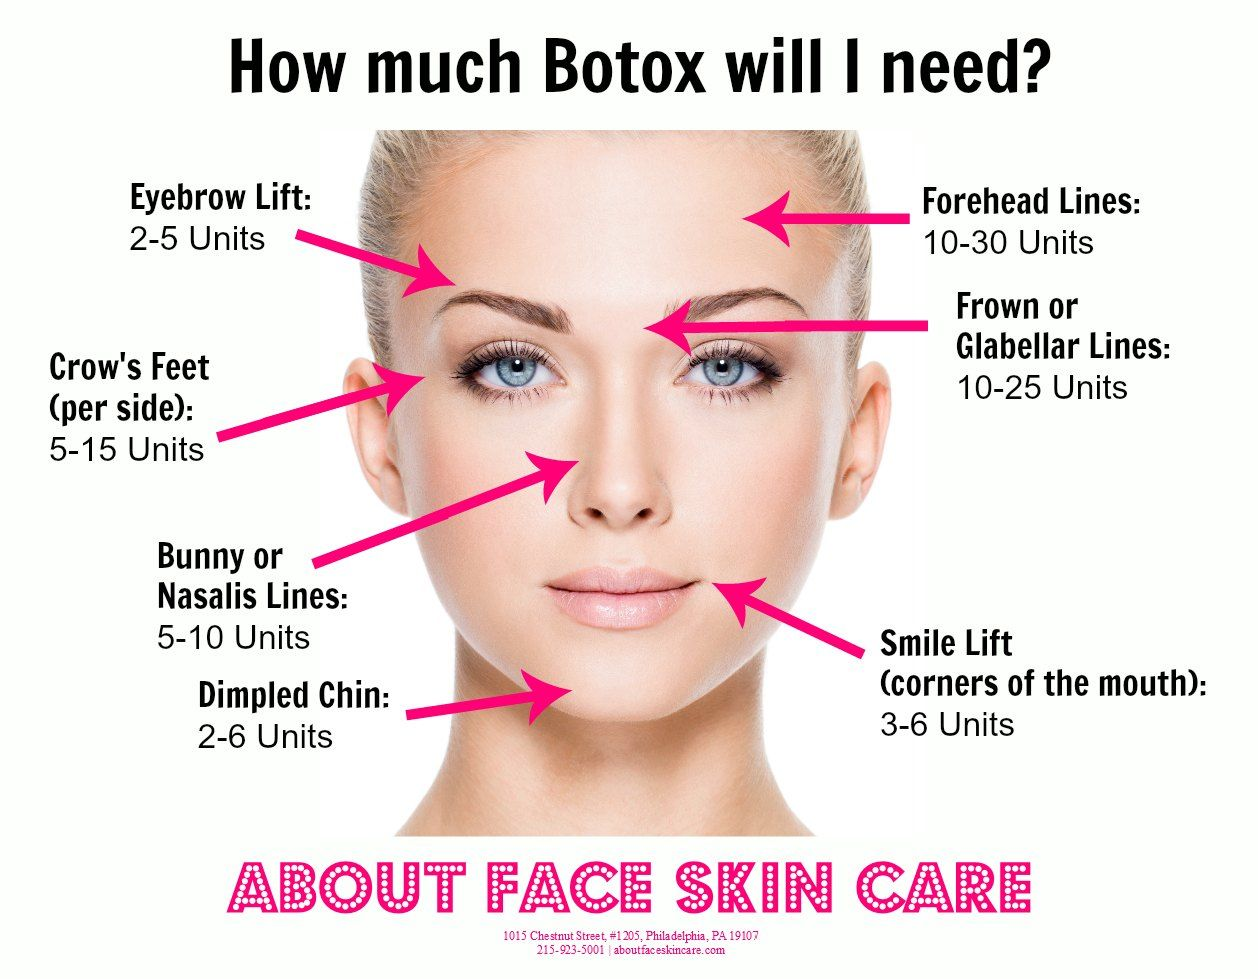 the average amount of botox units needed per facial area botox